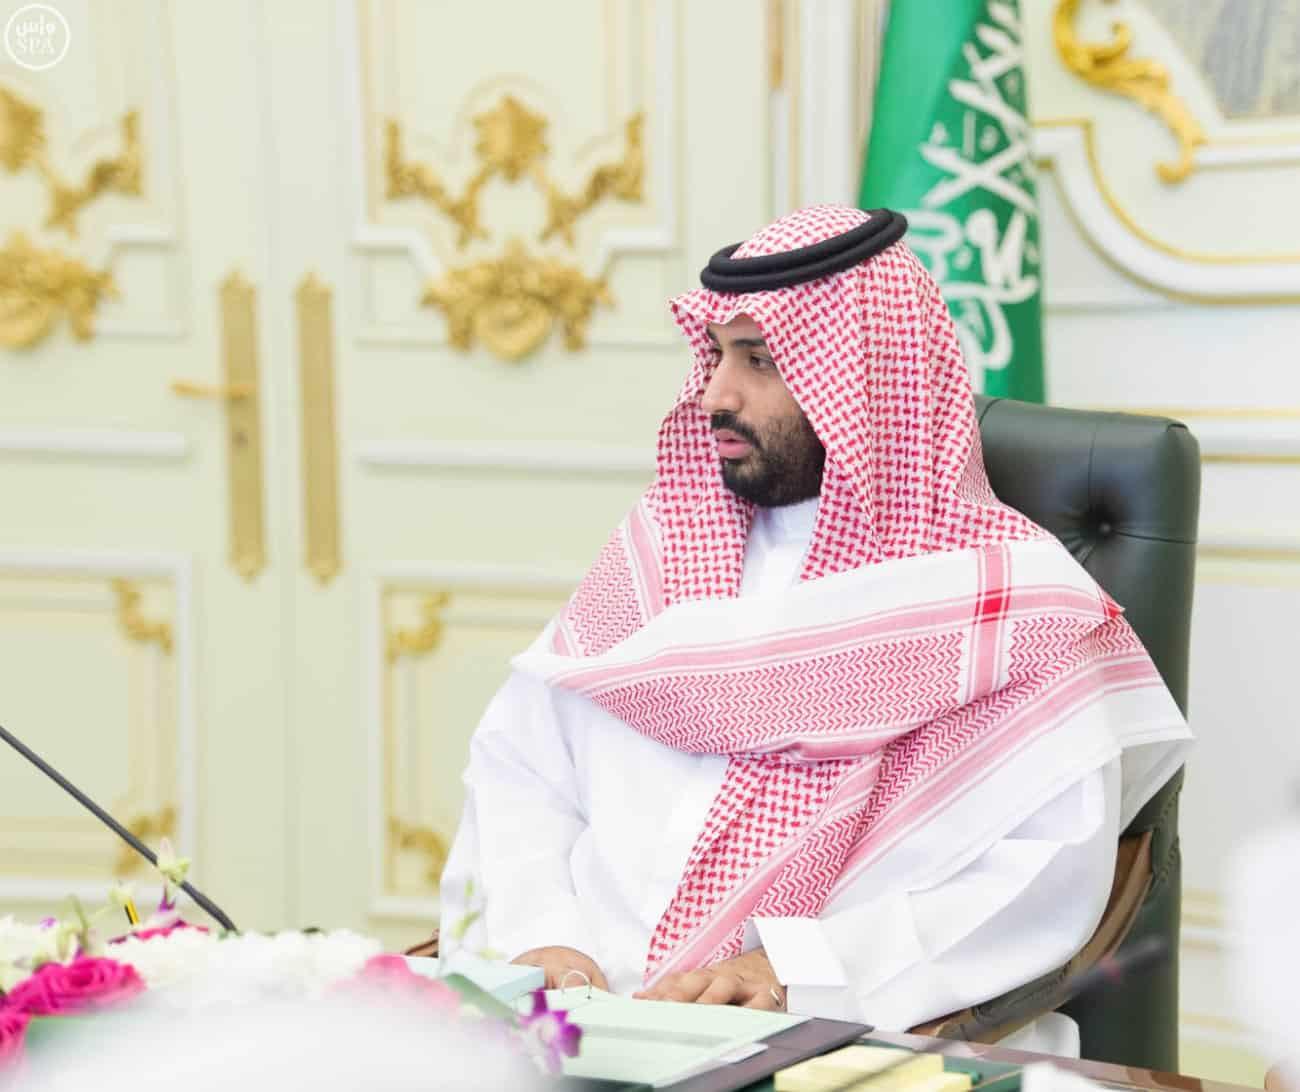 Deputy Crown Prince chairs meeting of Council of Economic Affairs and Development